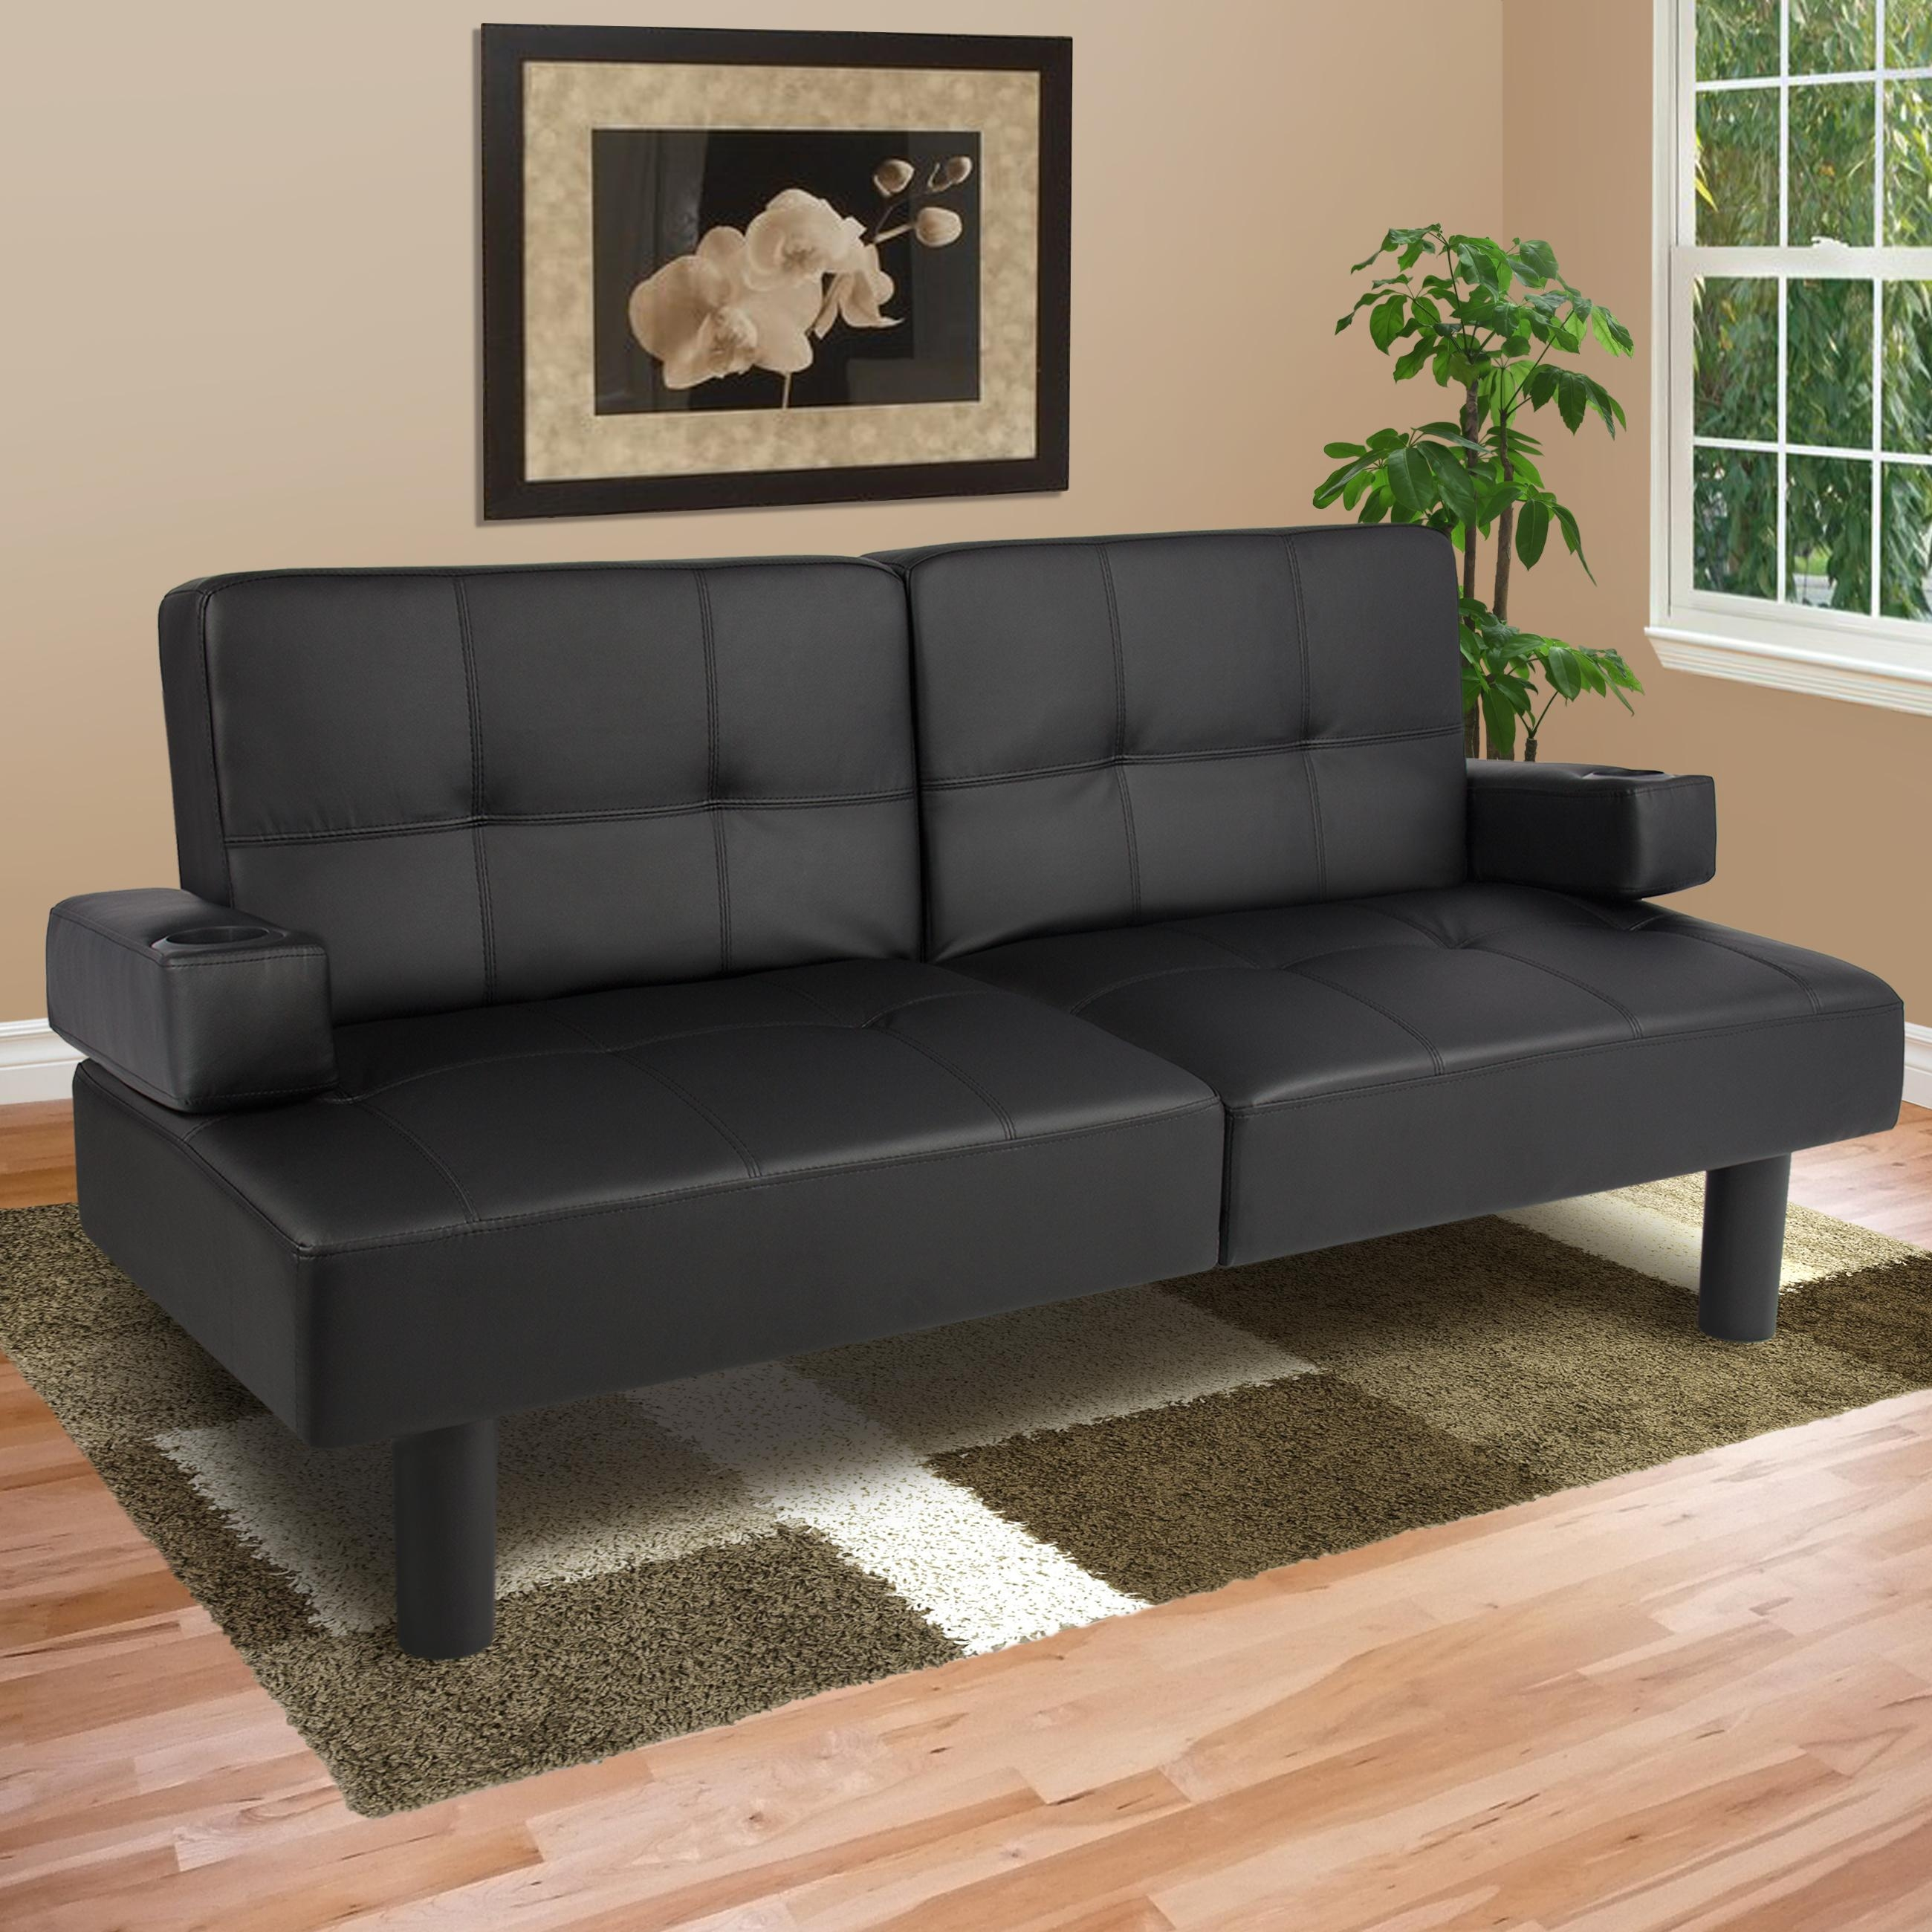 Best Choice Products Modern Leather Futon Sofa Bed Fold Up & Down With Regard To Futon Couch Beds (View 19 of 20)